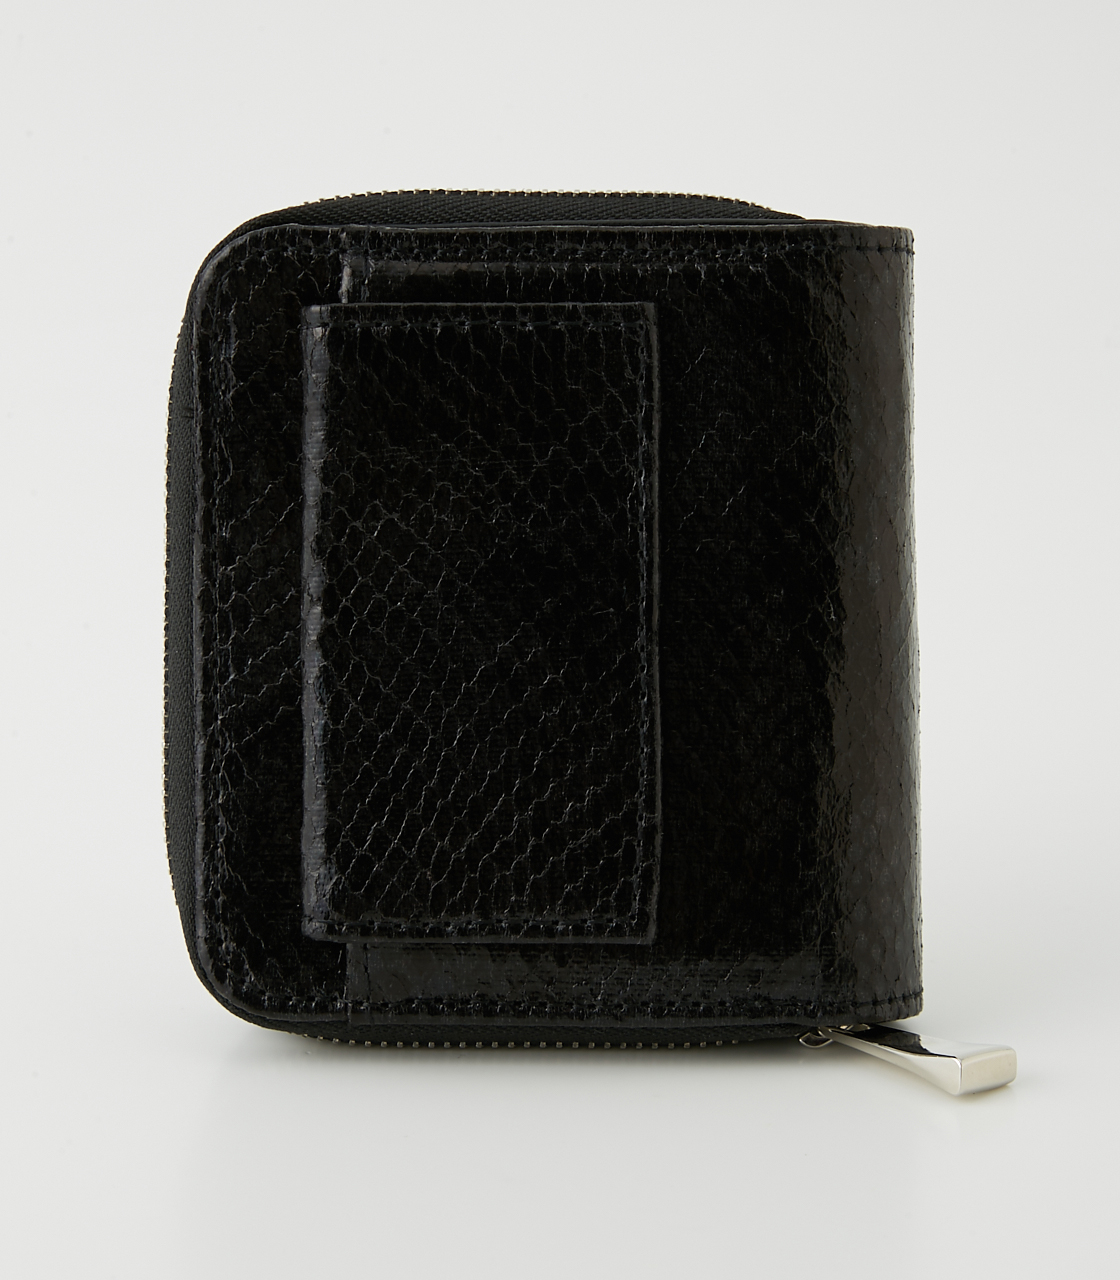 PYTHON COMPACT WALLET/パイソンコンパクトウォレット 詳細画像 柄BLK 3